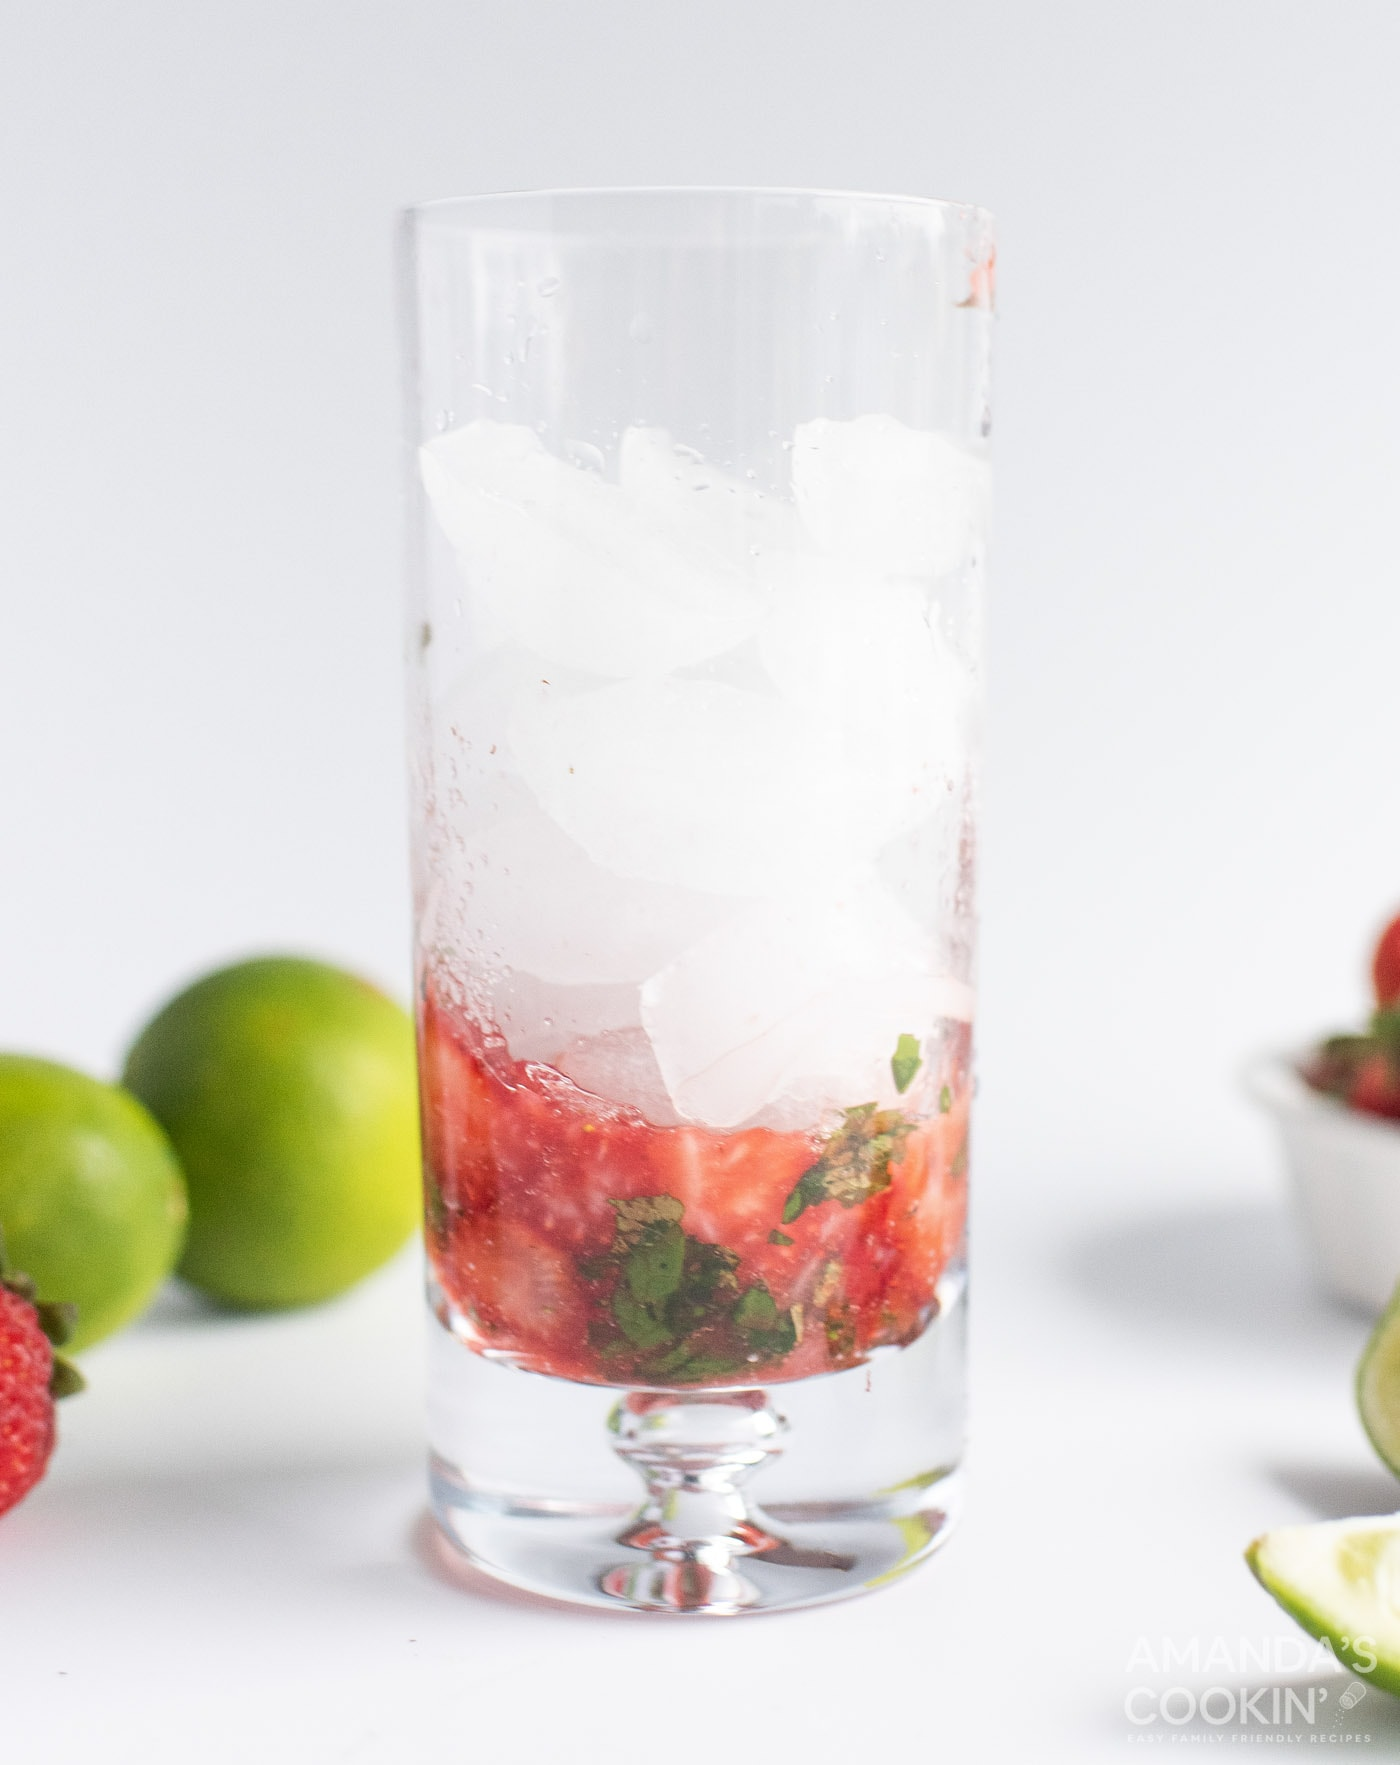 muddled strawberries and mint in a glass with ice